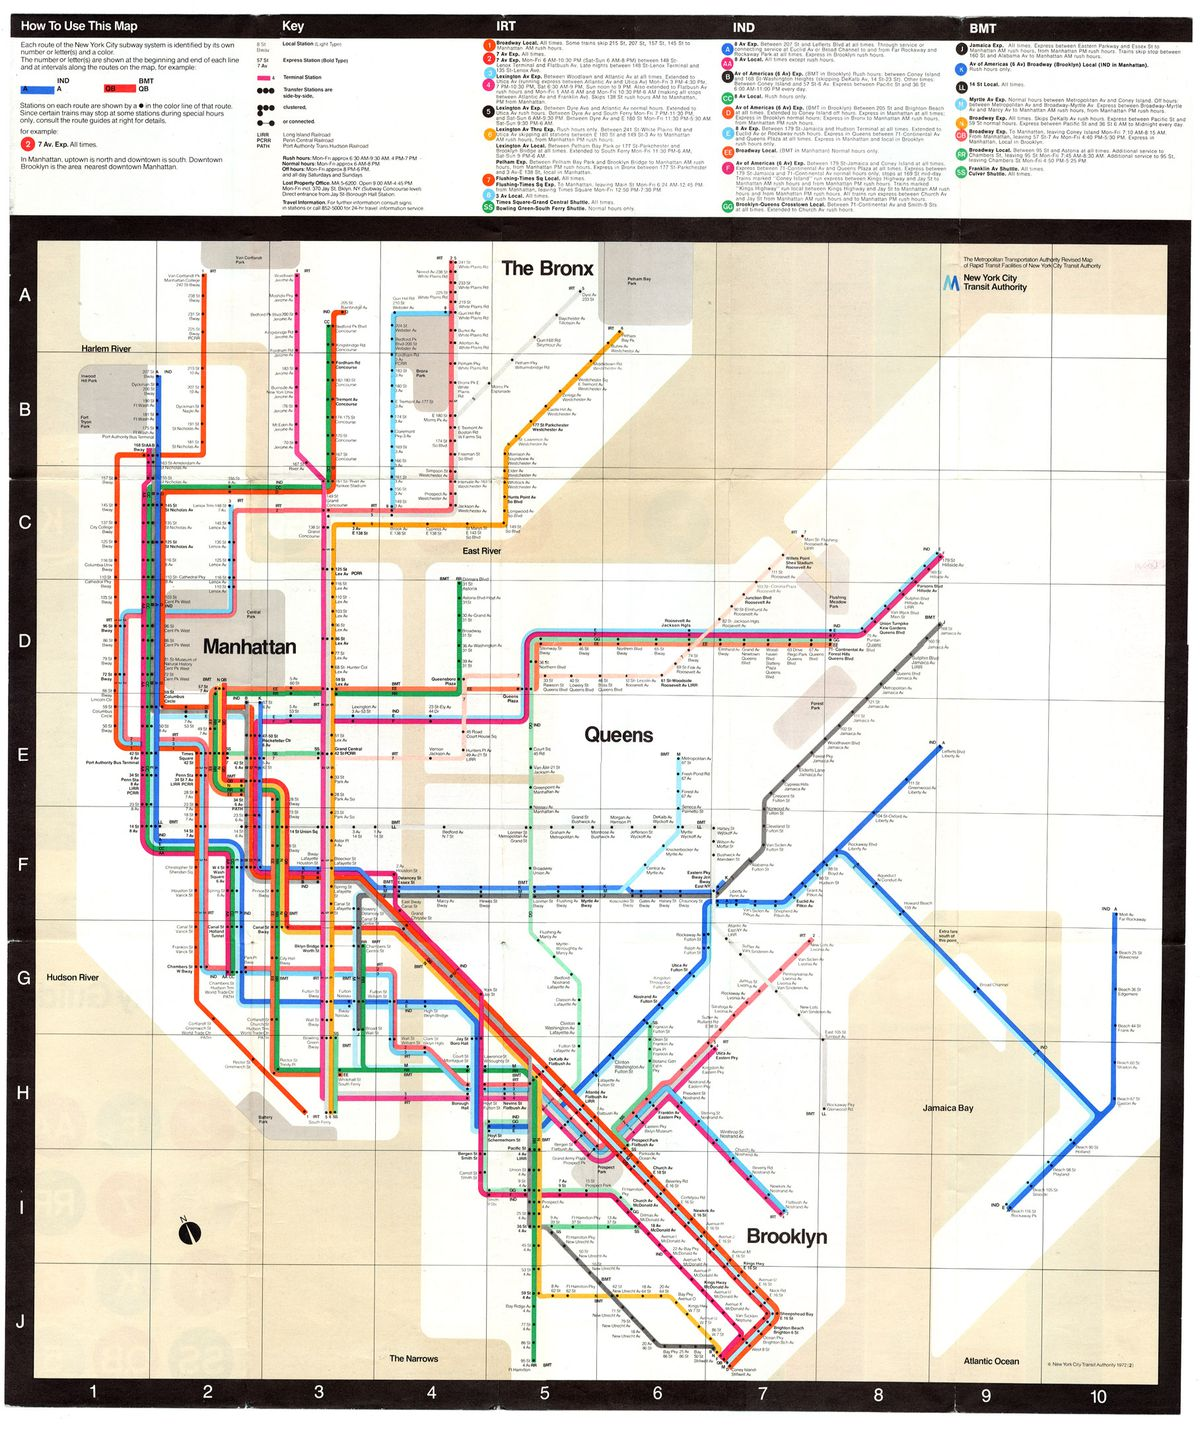 New York Subway Map Brooklyn.Nyc Subway Map S History And Influence Examined In New Museum